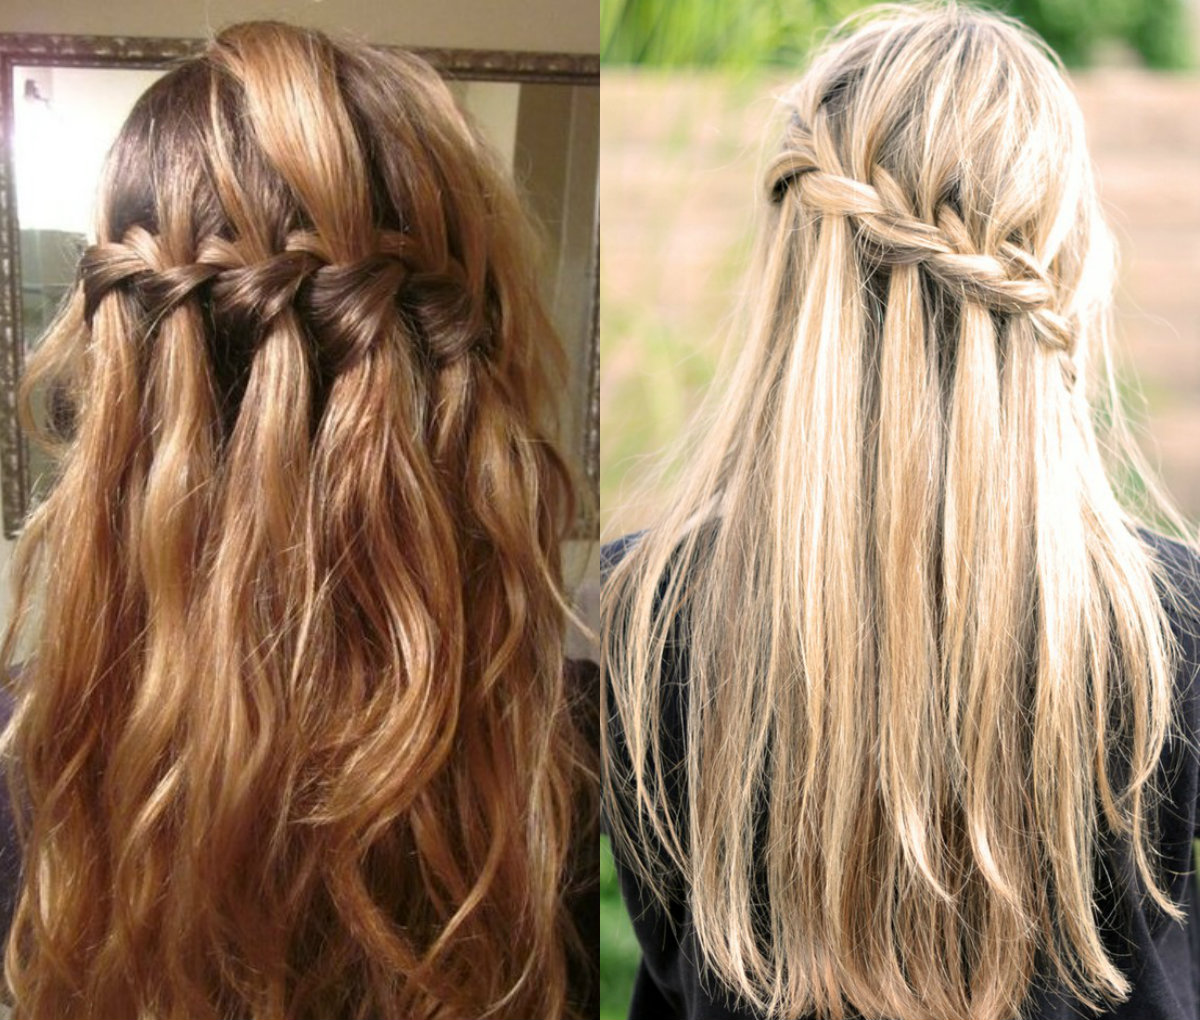 Autumn Trends II: Braids, Not Only in The Hair